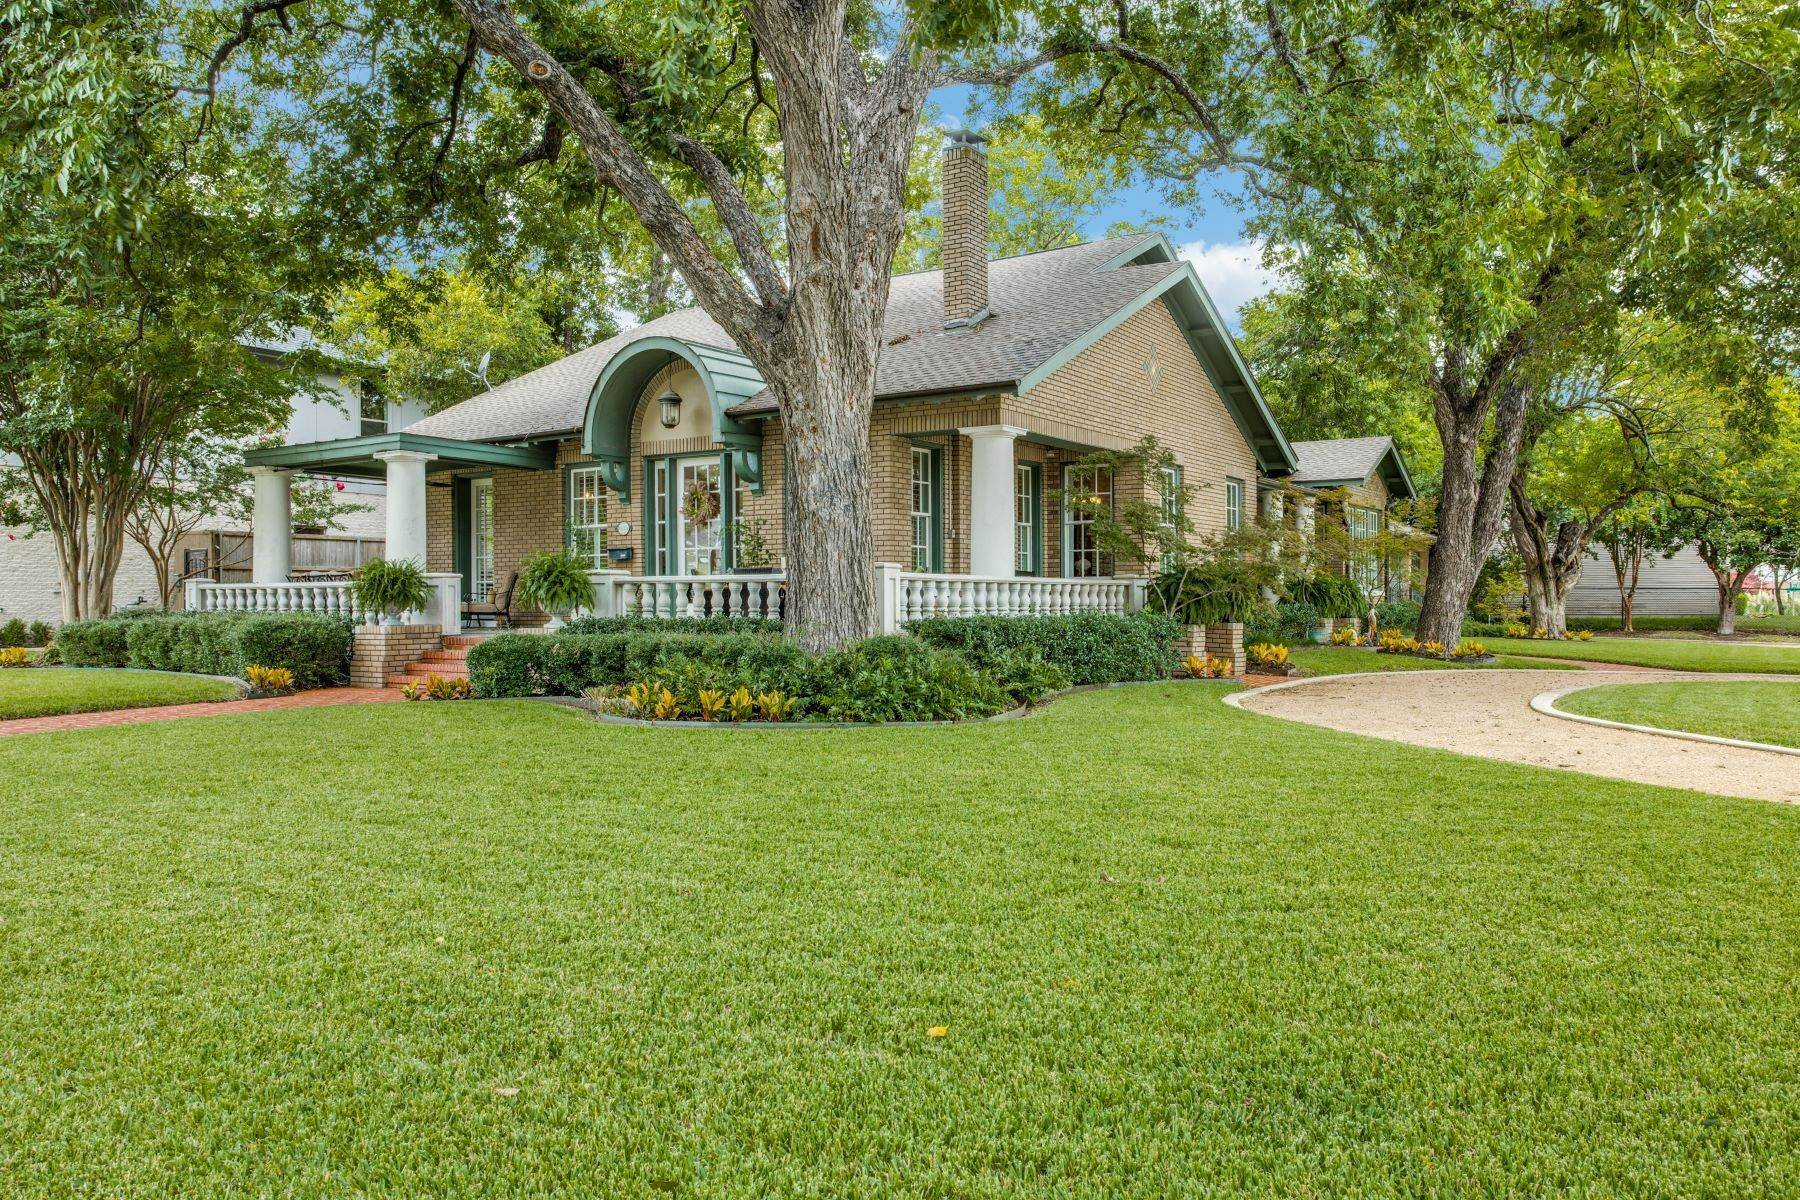 Single Family Homes for Sale at Overflowing with Charm 6135 Tremont Street Dallas, Texas 75214 United States